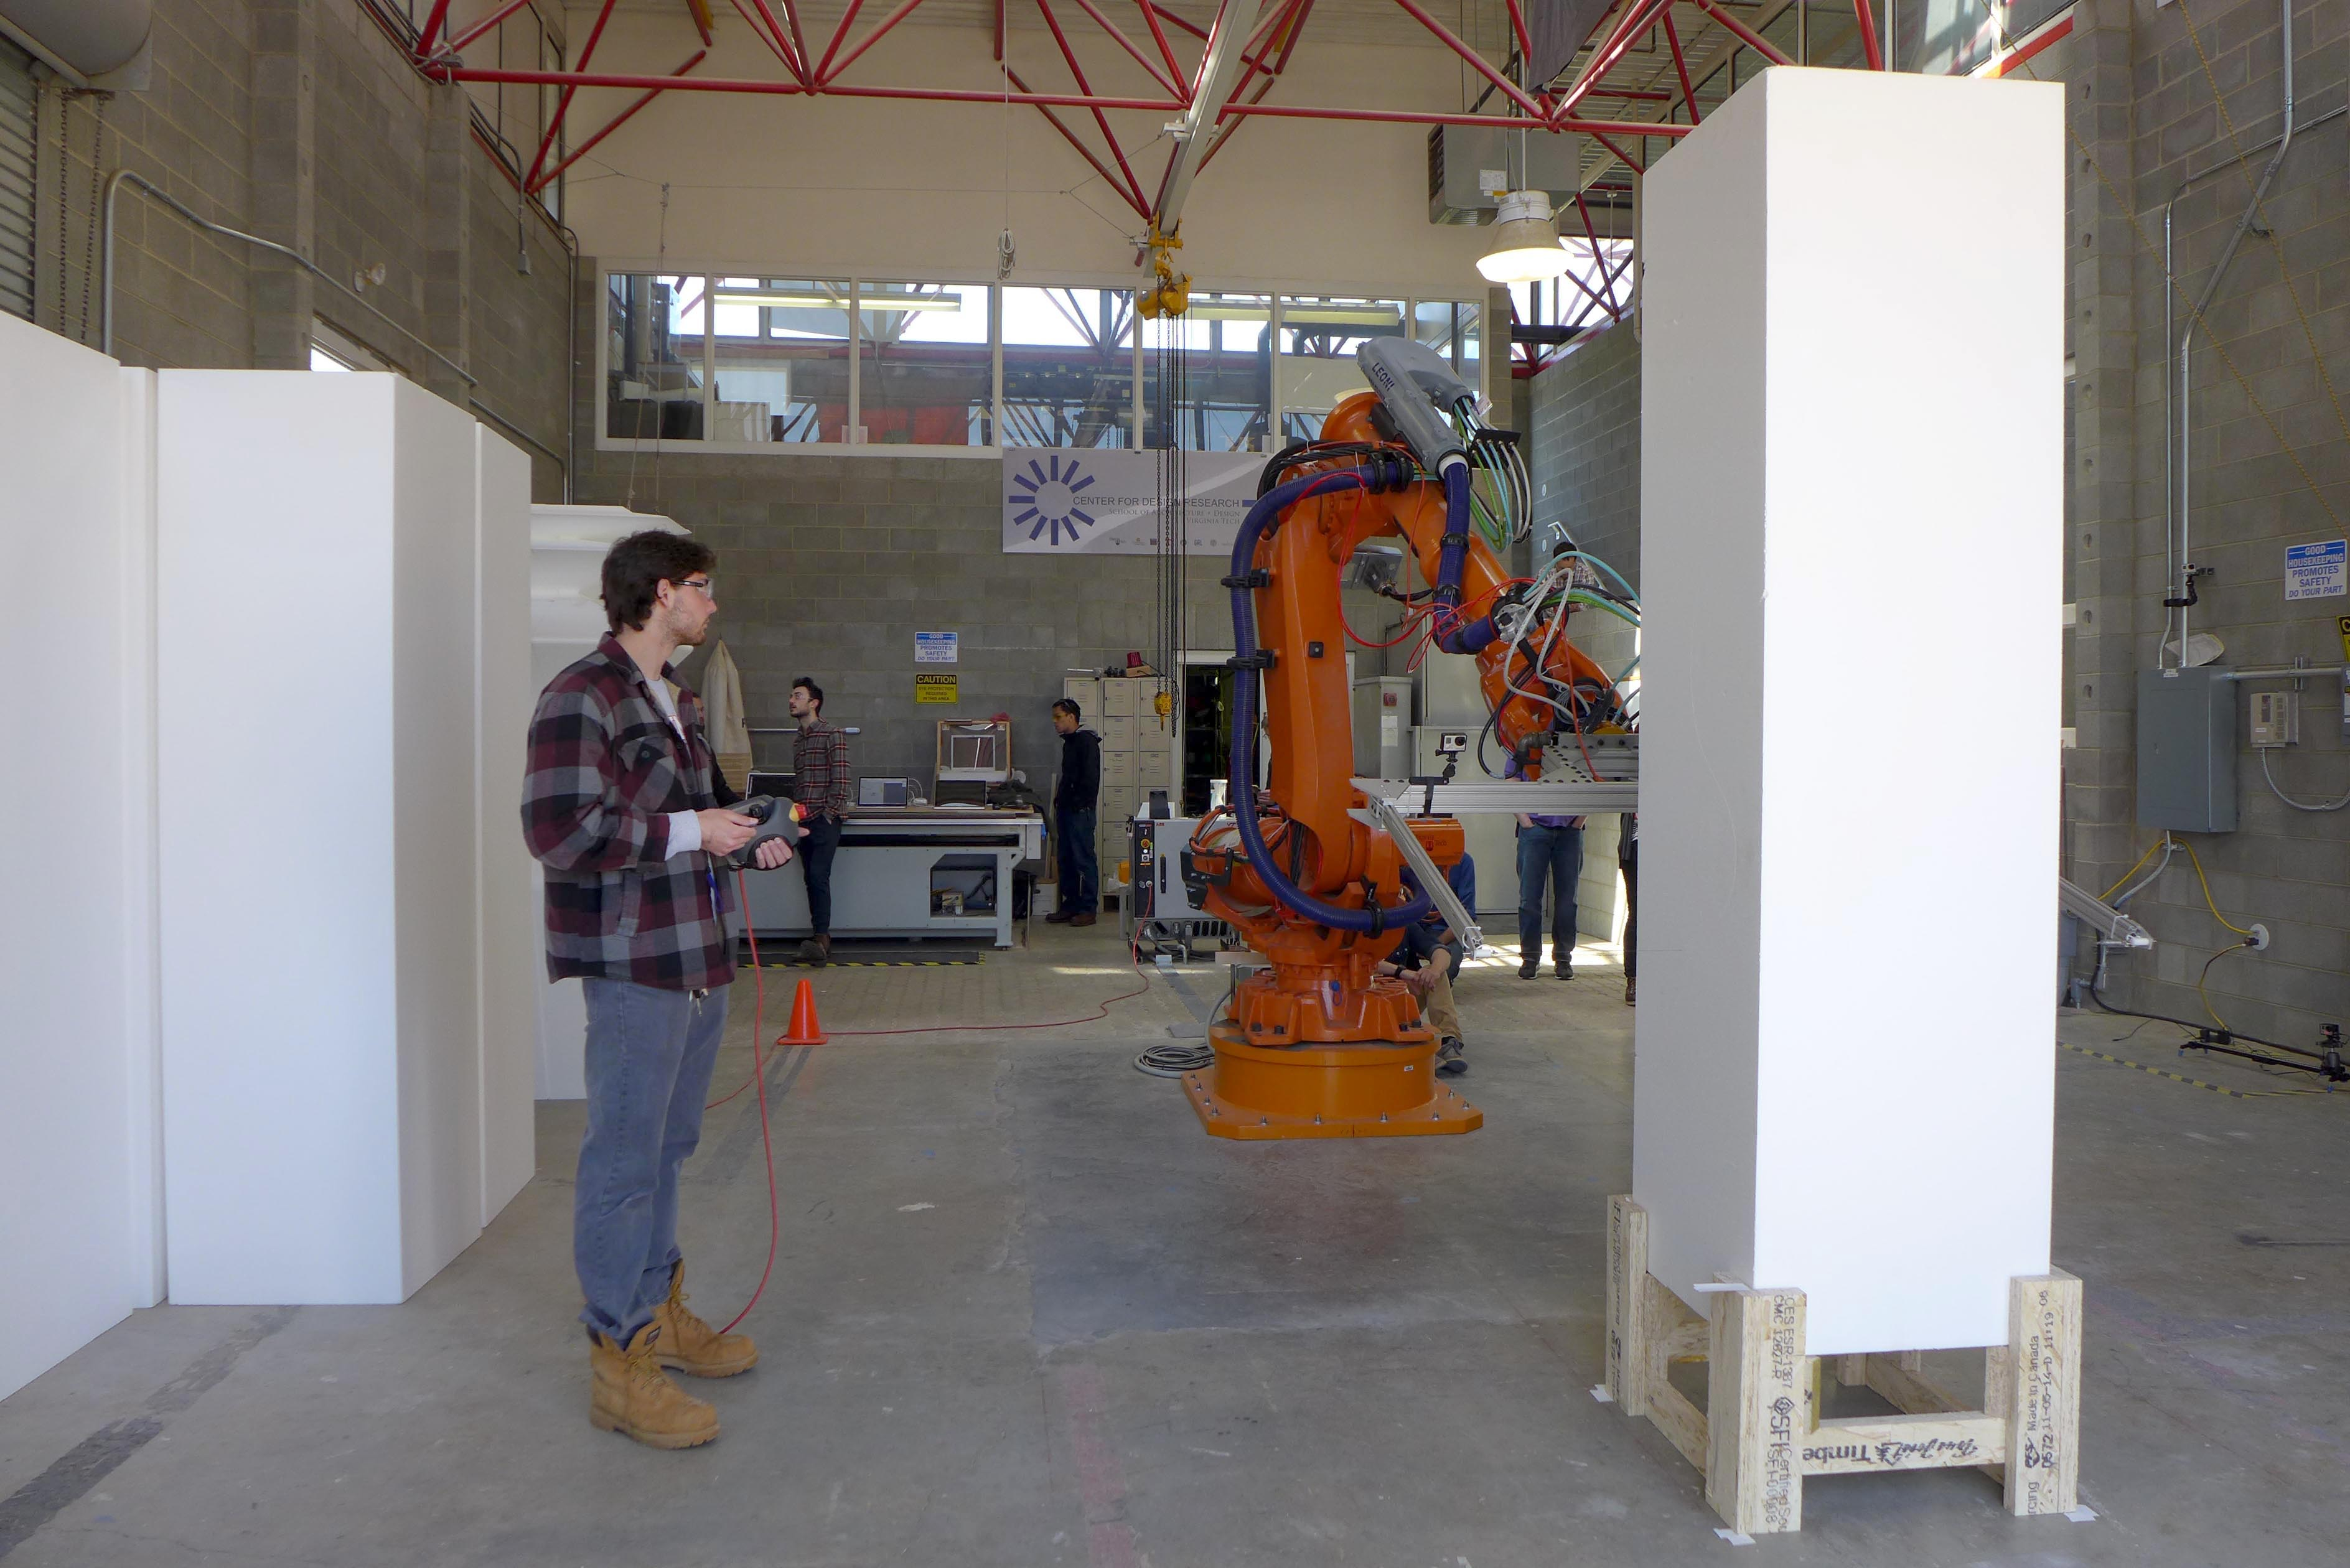 A young man controls a large industrial robot with a remote control as it prepares to cut a 7-foot styrofoam block.